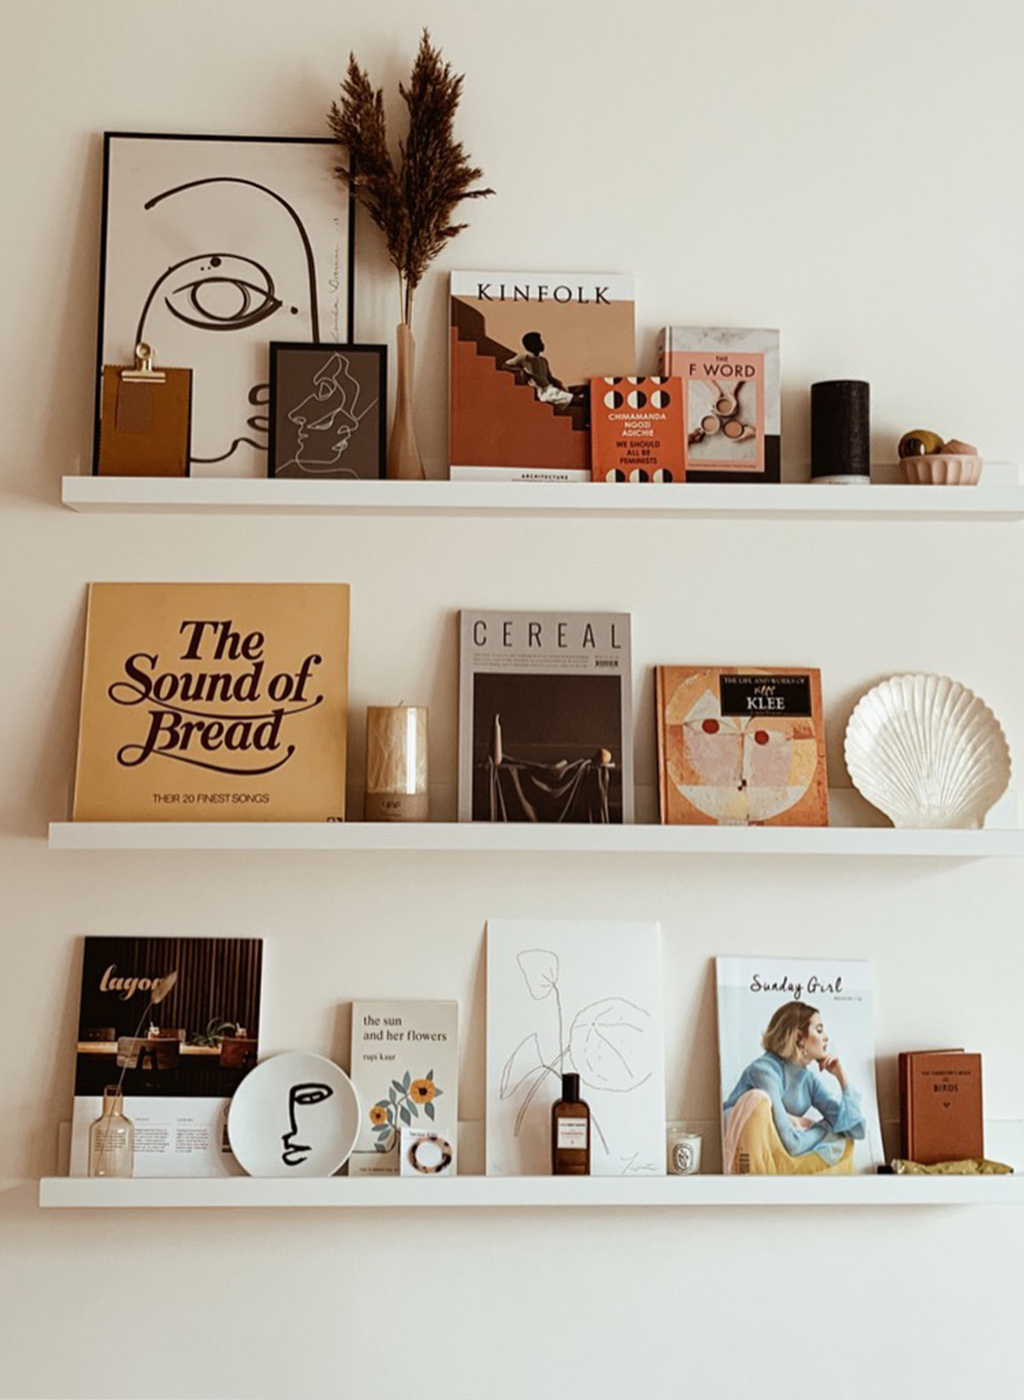 shelf styling, open shelving, interior styling, home makeover, renovation, bedroom makeover, wall art, cereal mag, Kinfolk home, the little deer, hm home, lily pebbles